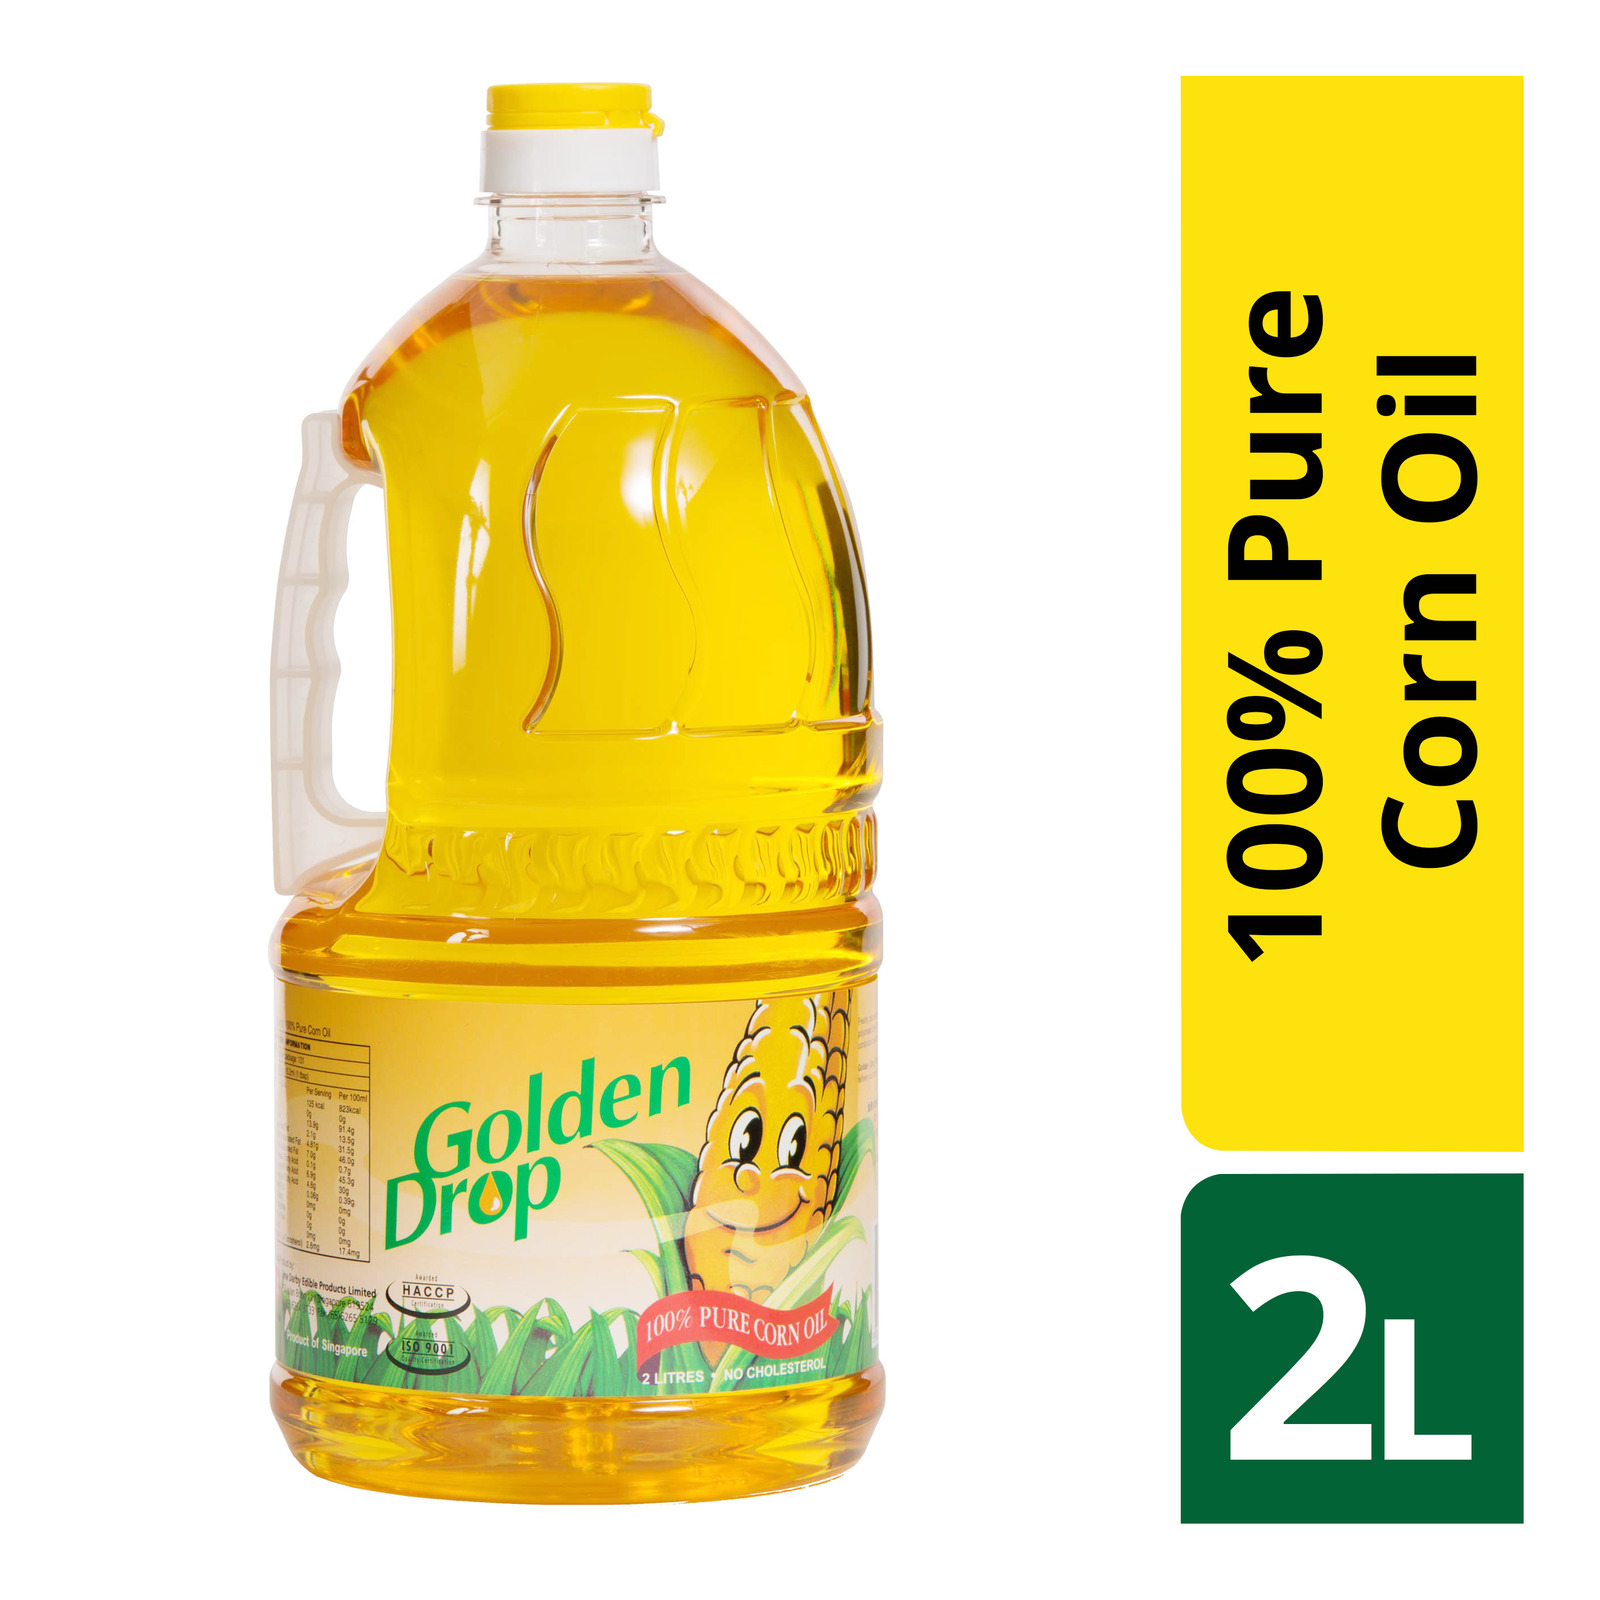 Golden Drop 100% Pure Corn Oil